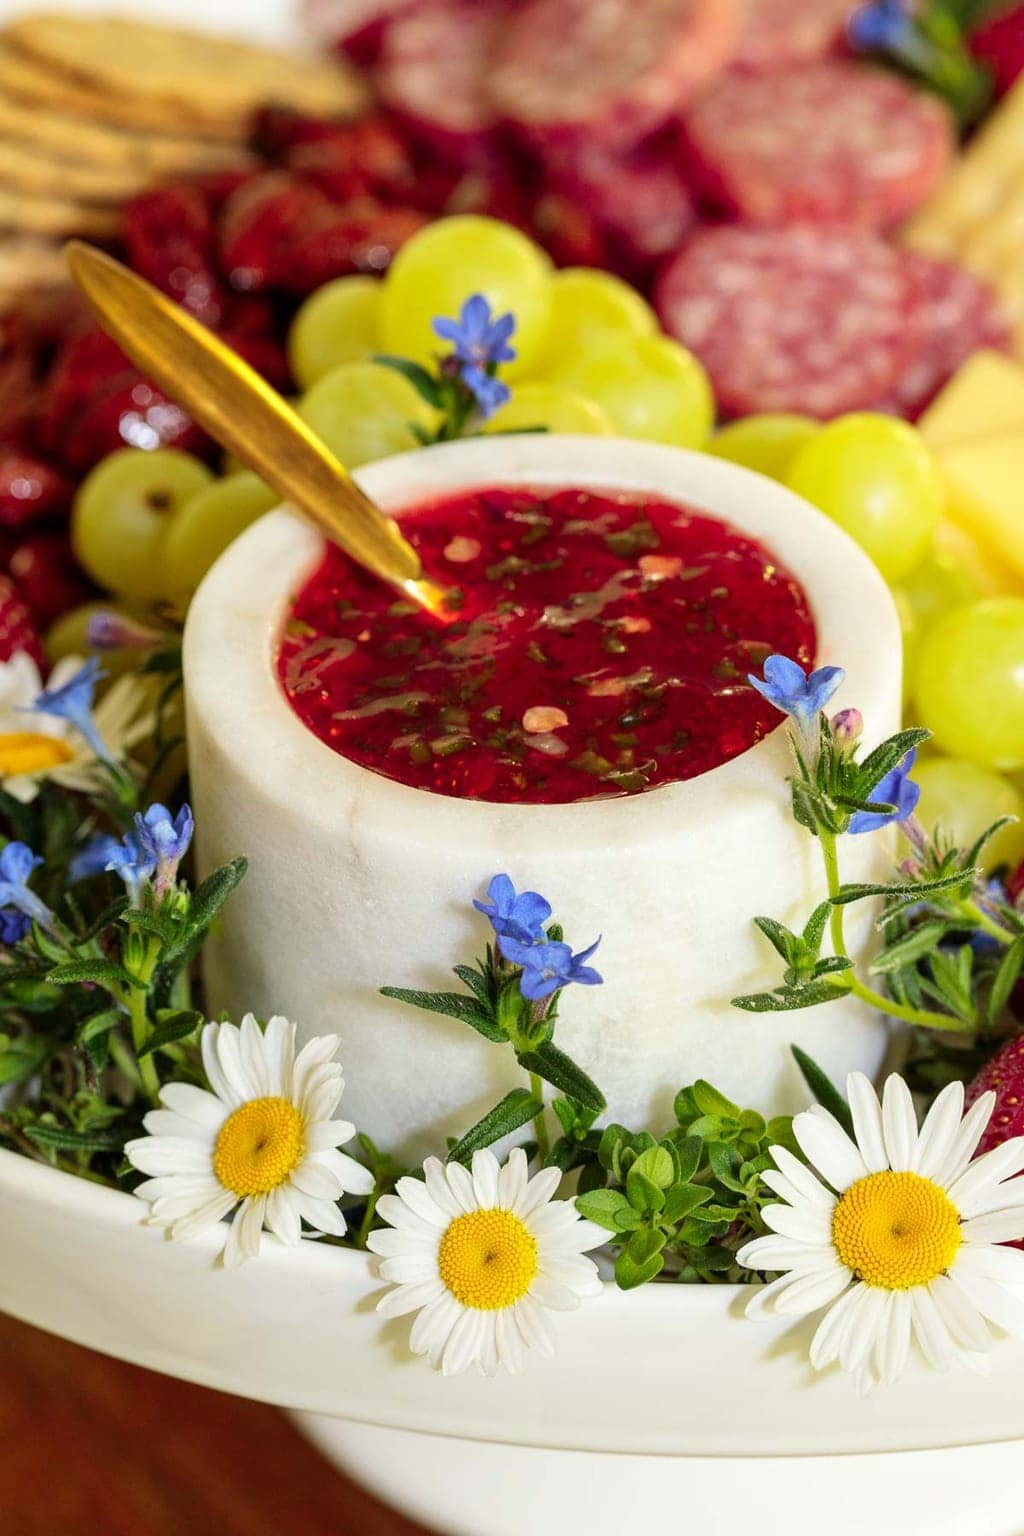 Vertical photo of a white marble bowl of Strawberry Jalapeño Jam on a charcuterie board with flowers in the foreground.